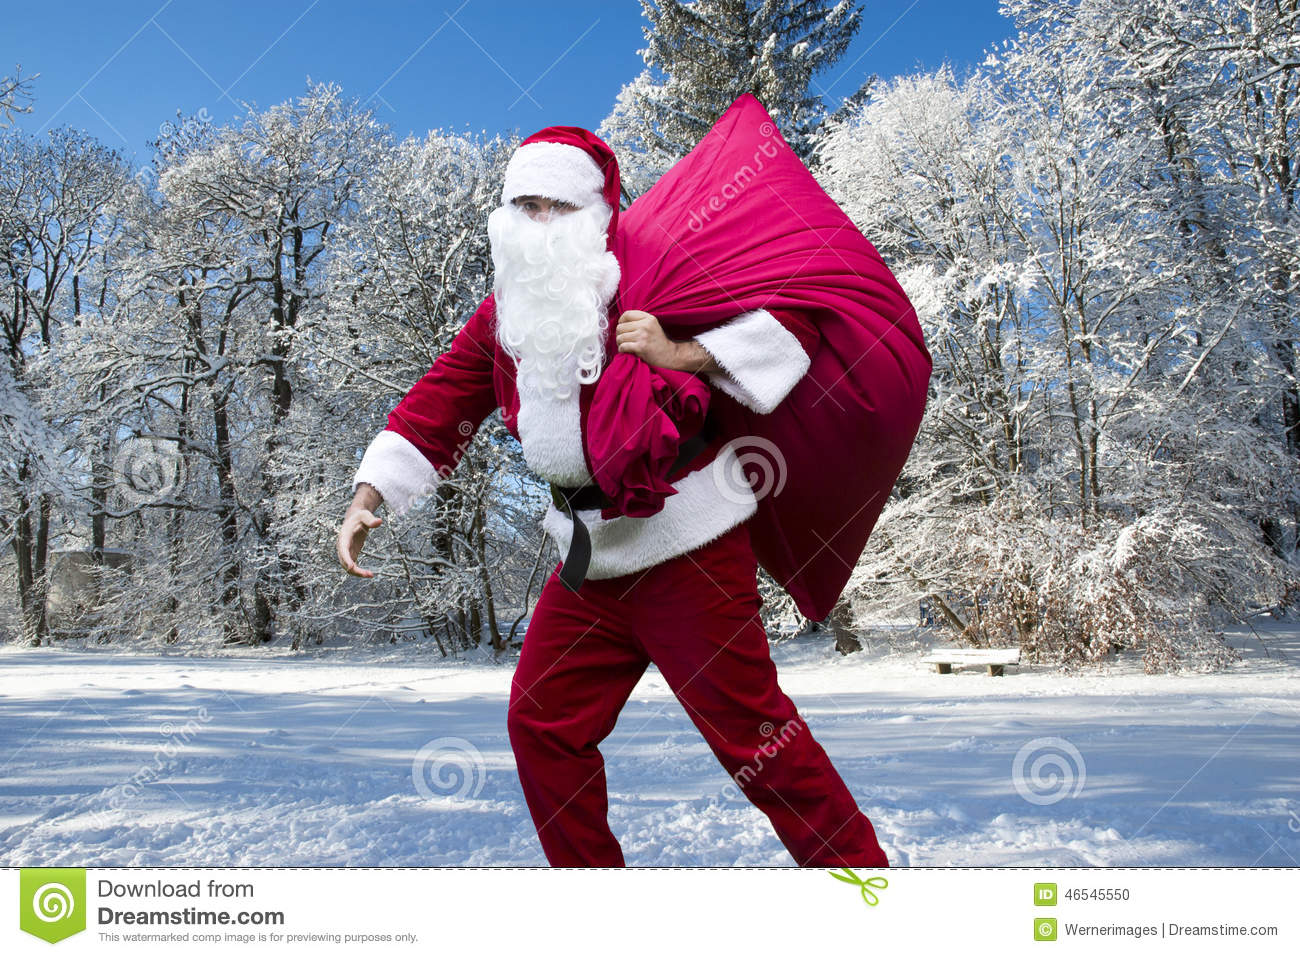 Santa Claus In The Snow Stock Photo. Image Of Holiday